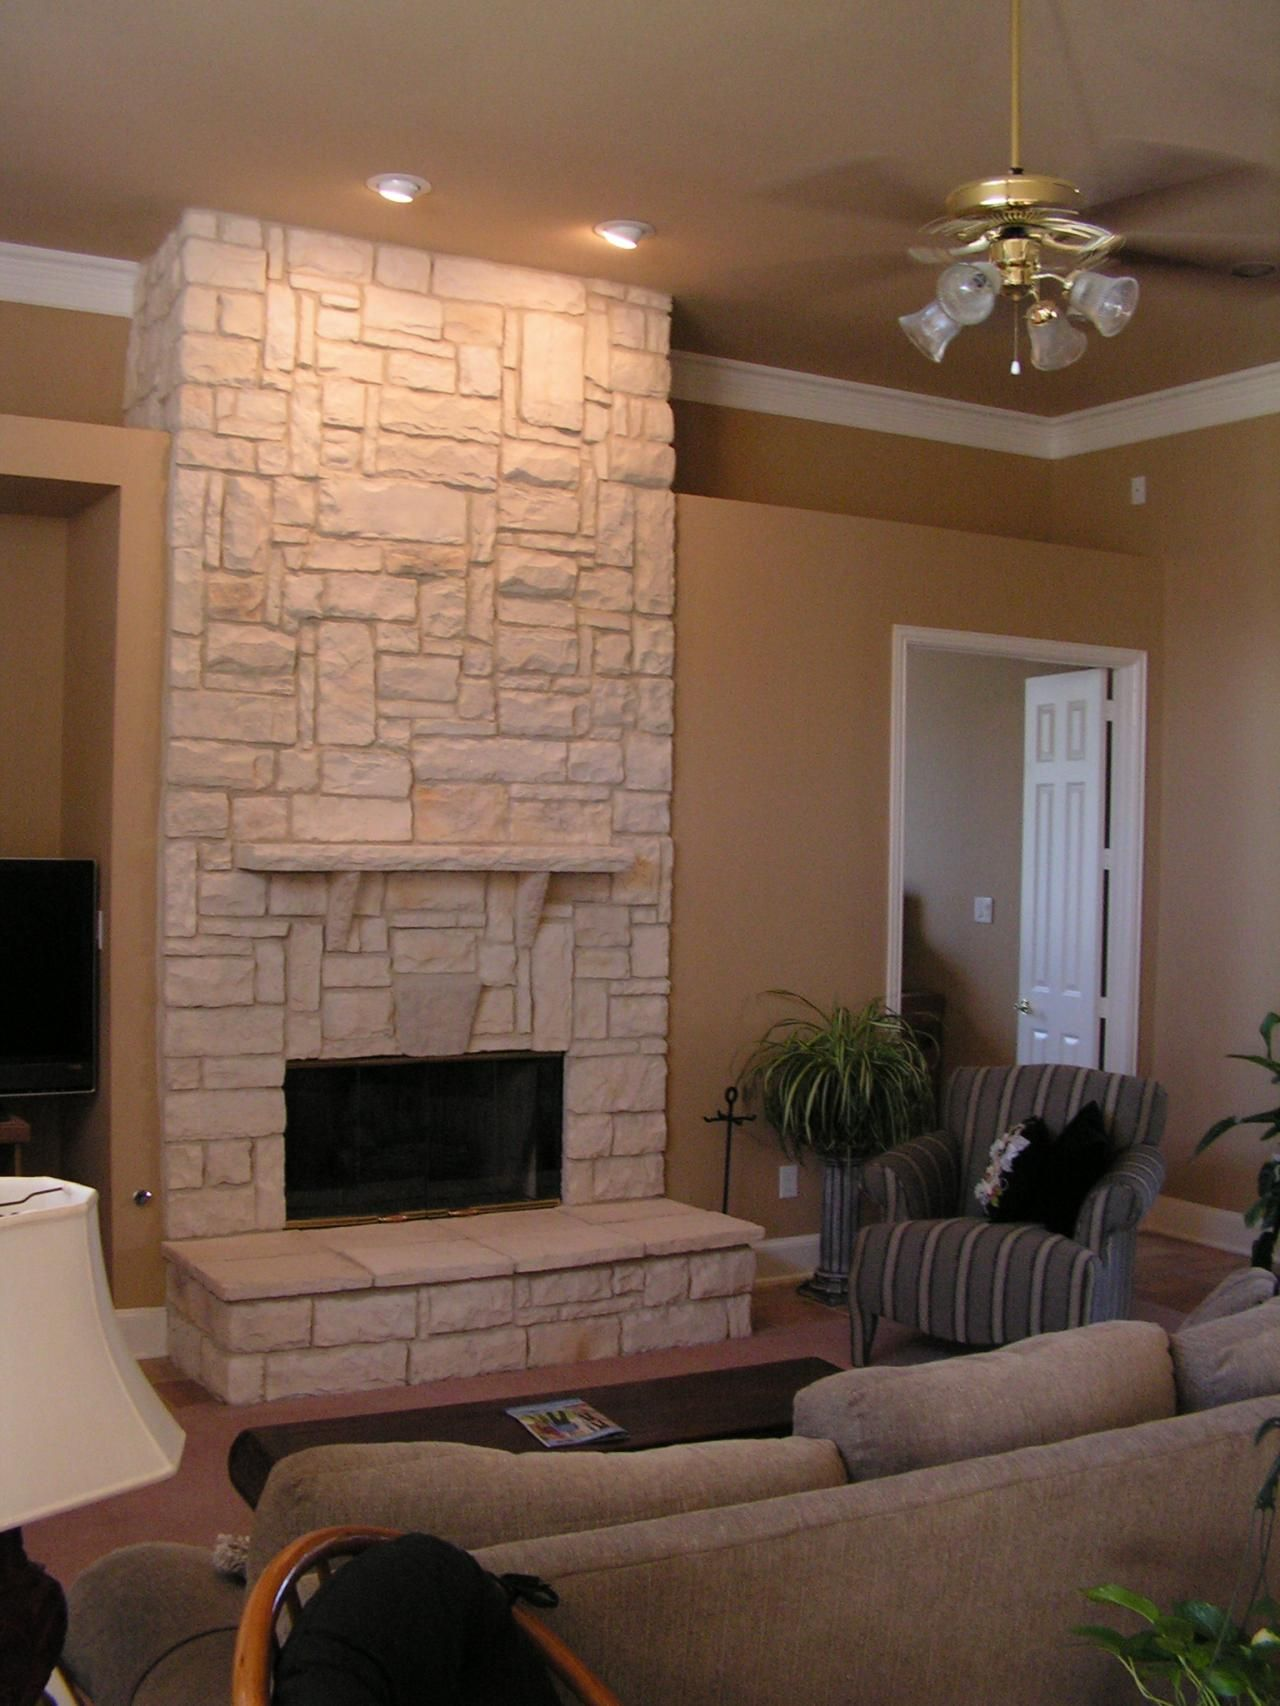 Image Detail for - Installed new Veneer Stone from Coronado stone